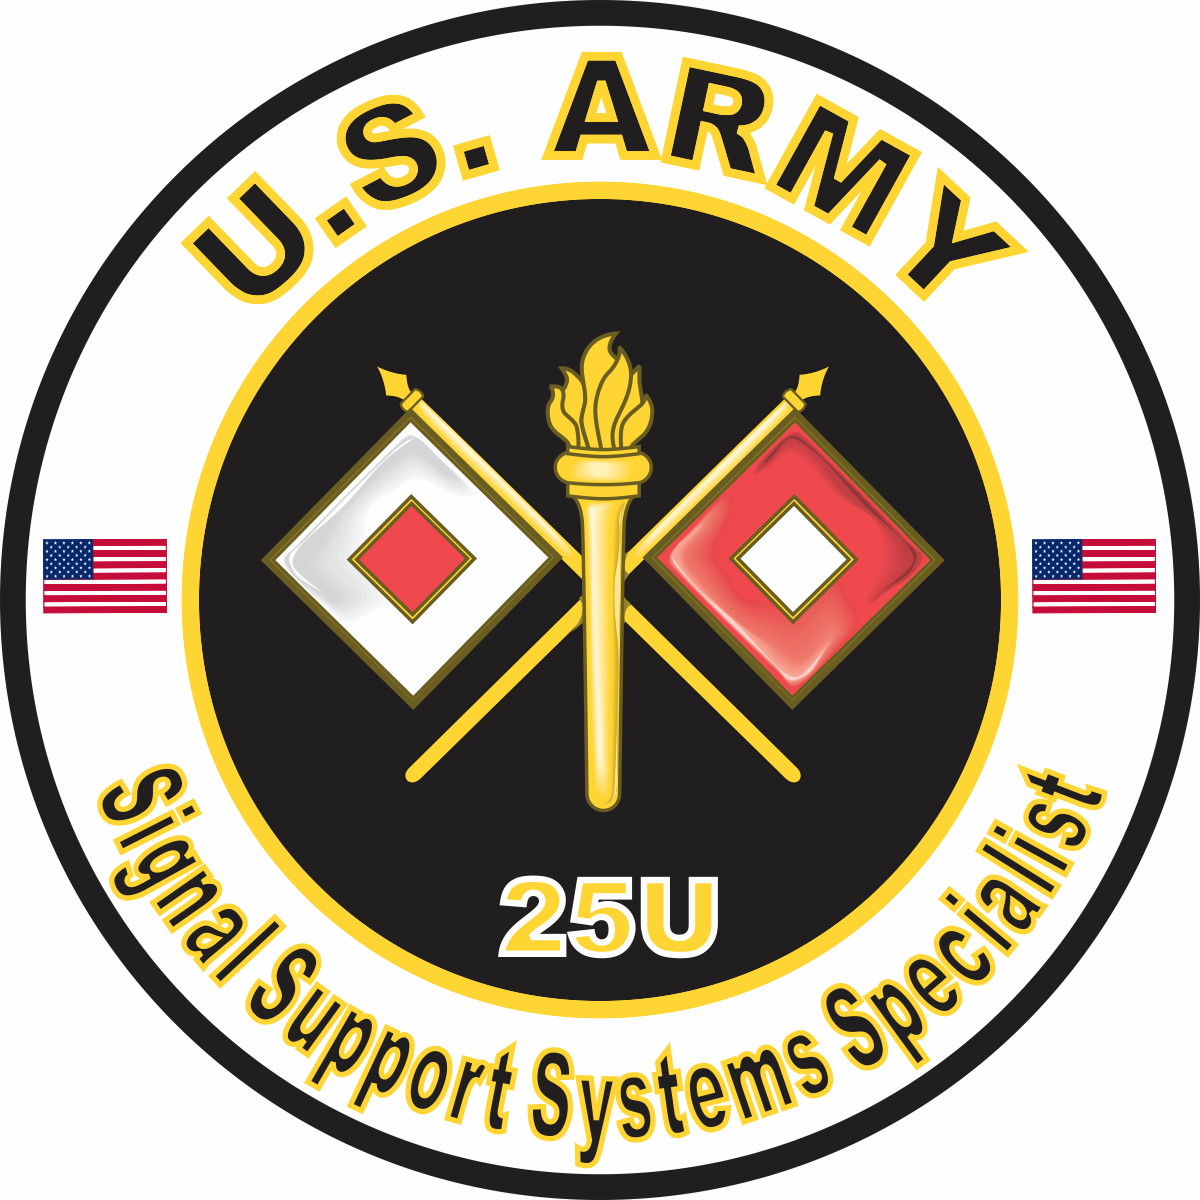 army mos u signal support systems specialist us army mos 25u signal support systems specialist